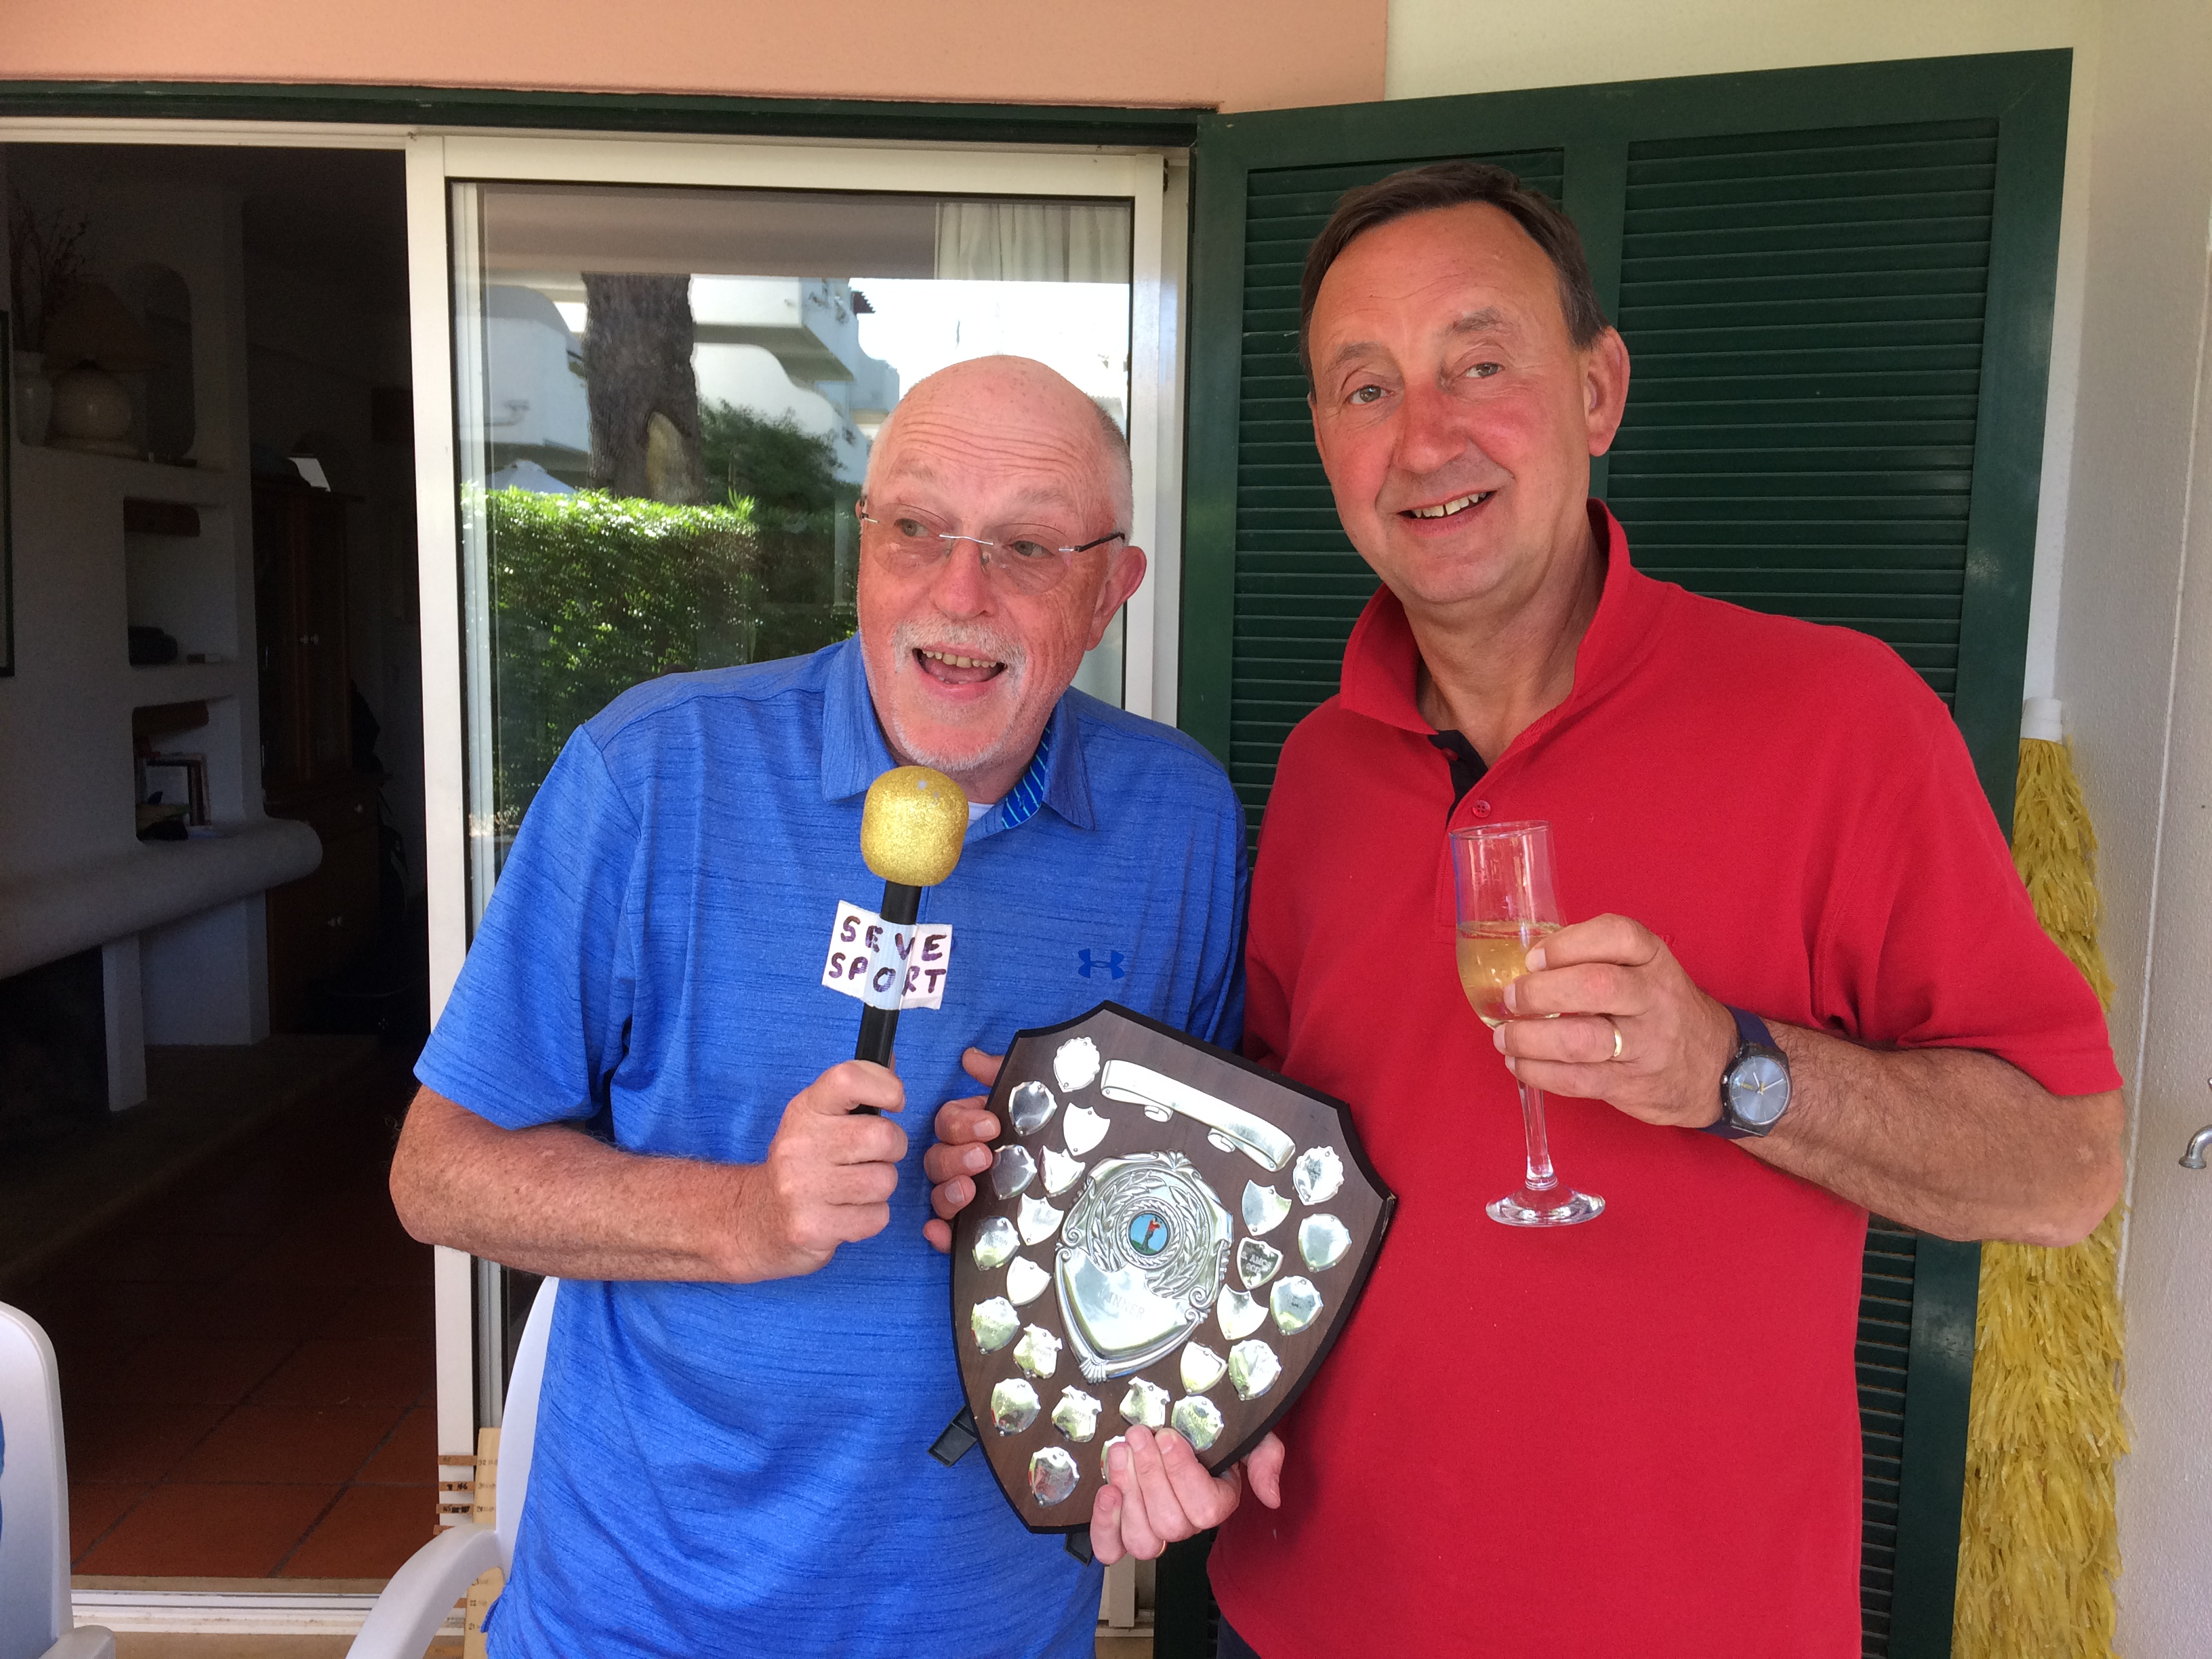 Portugal 2018 – MK Seve Snatches Victory from Hoppy Dearsley !